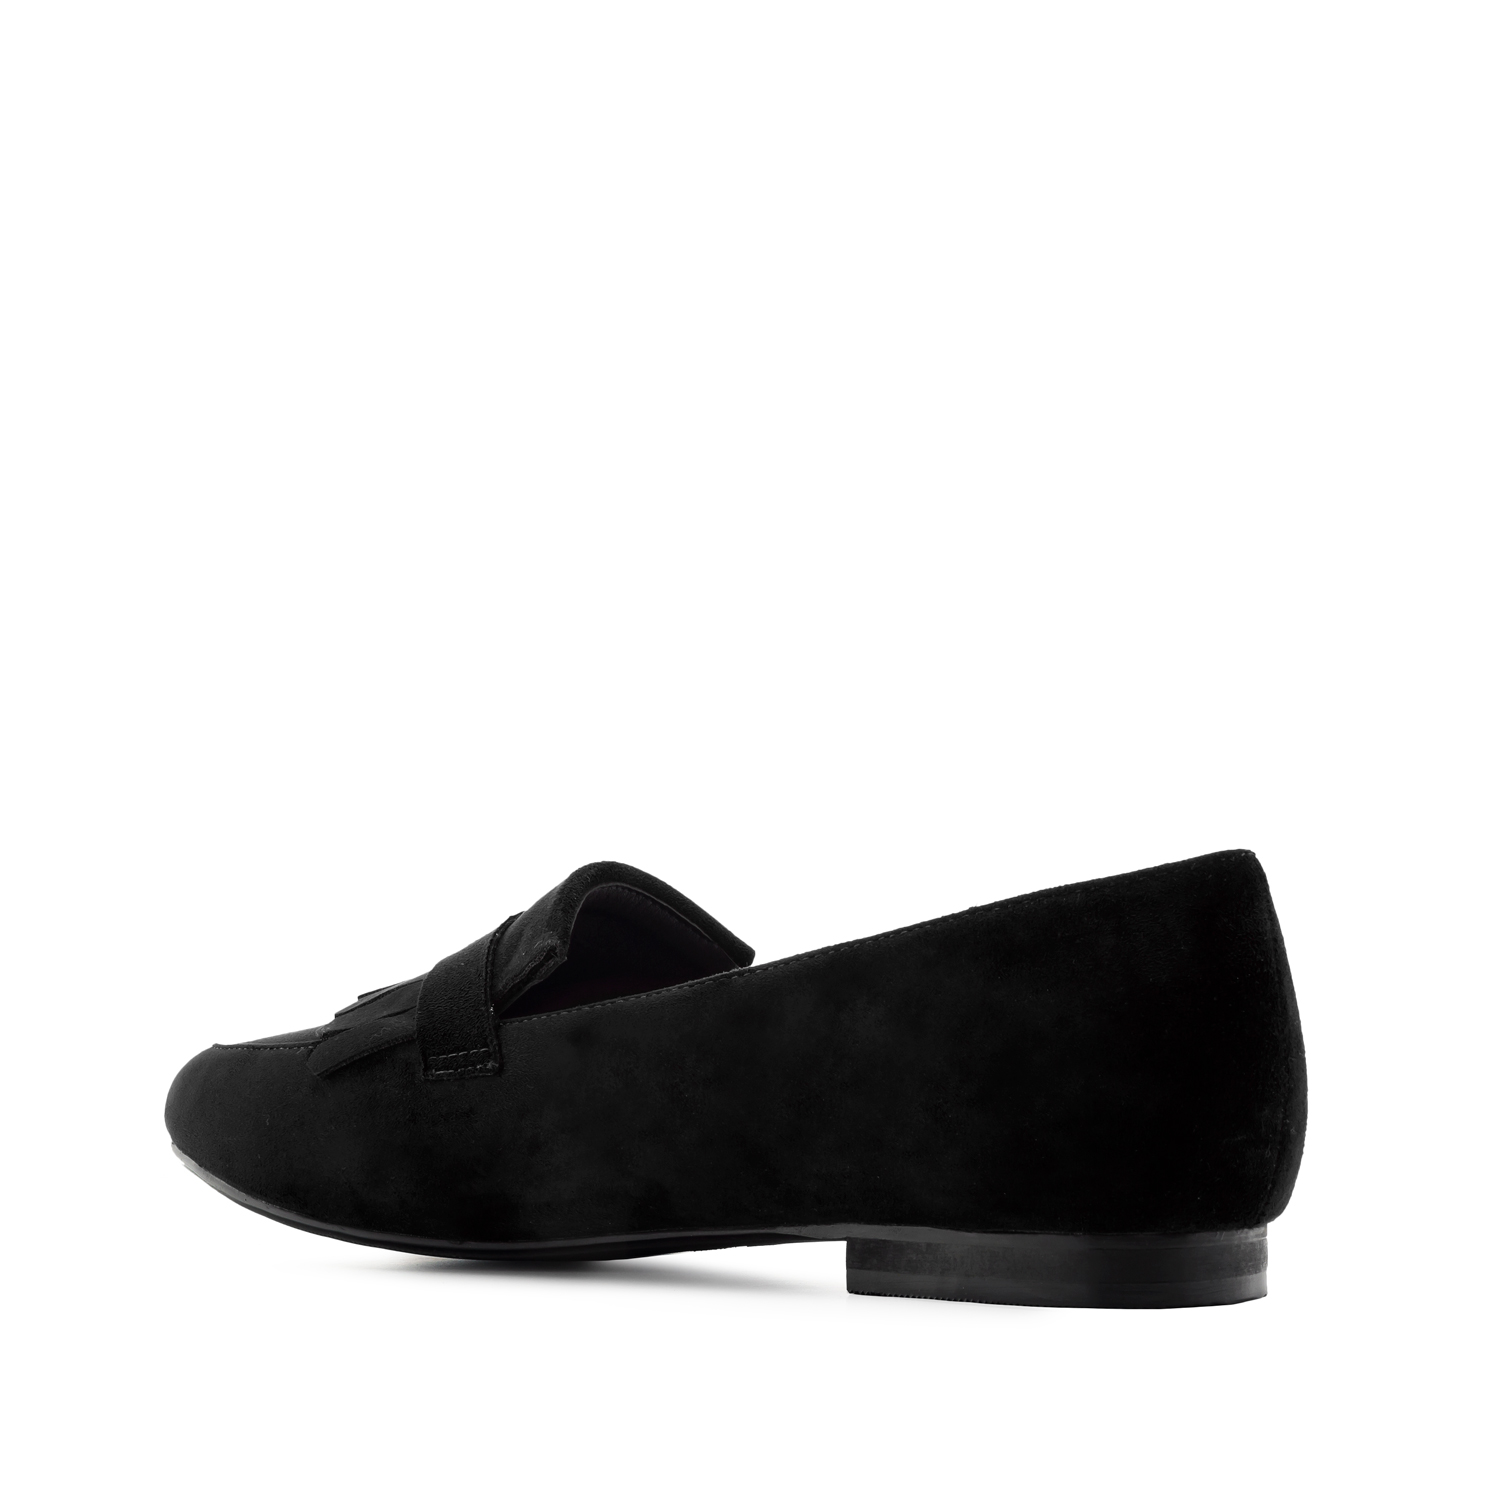 Fringed Loafers in Black Suede